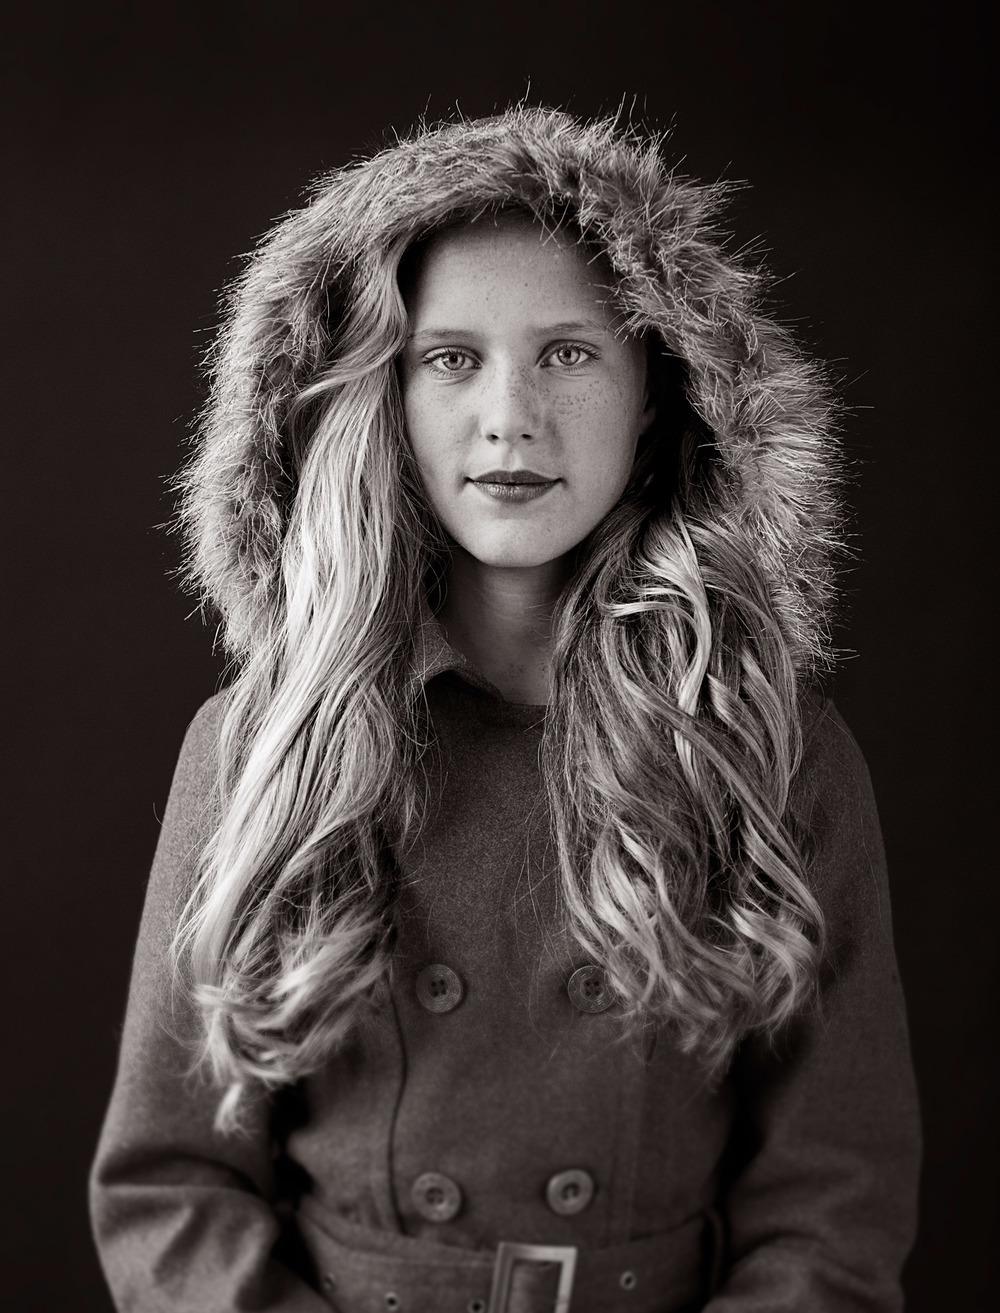 Portrait Photography Derek Israelsen Kid Hood Coat